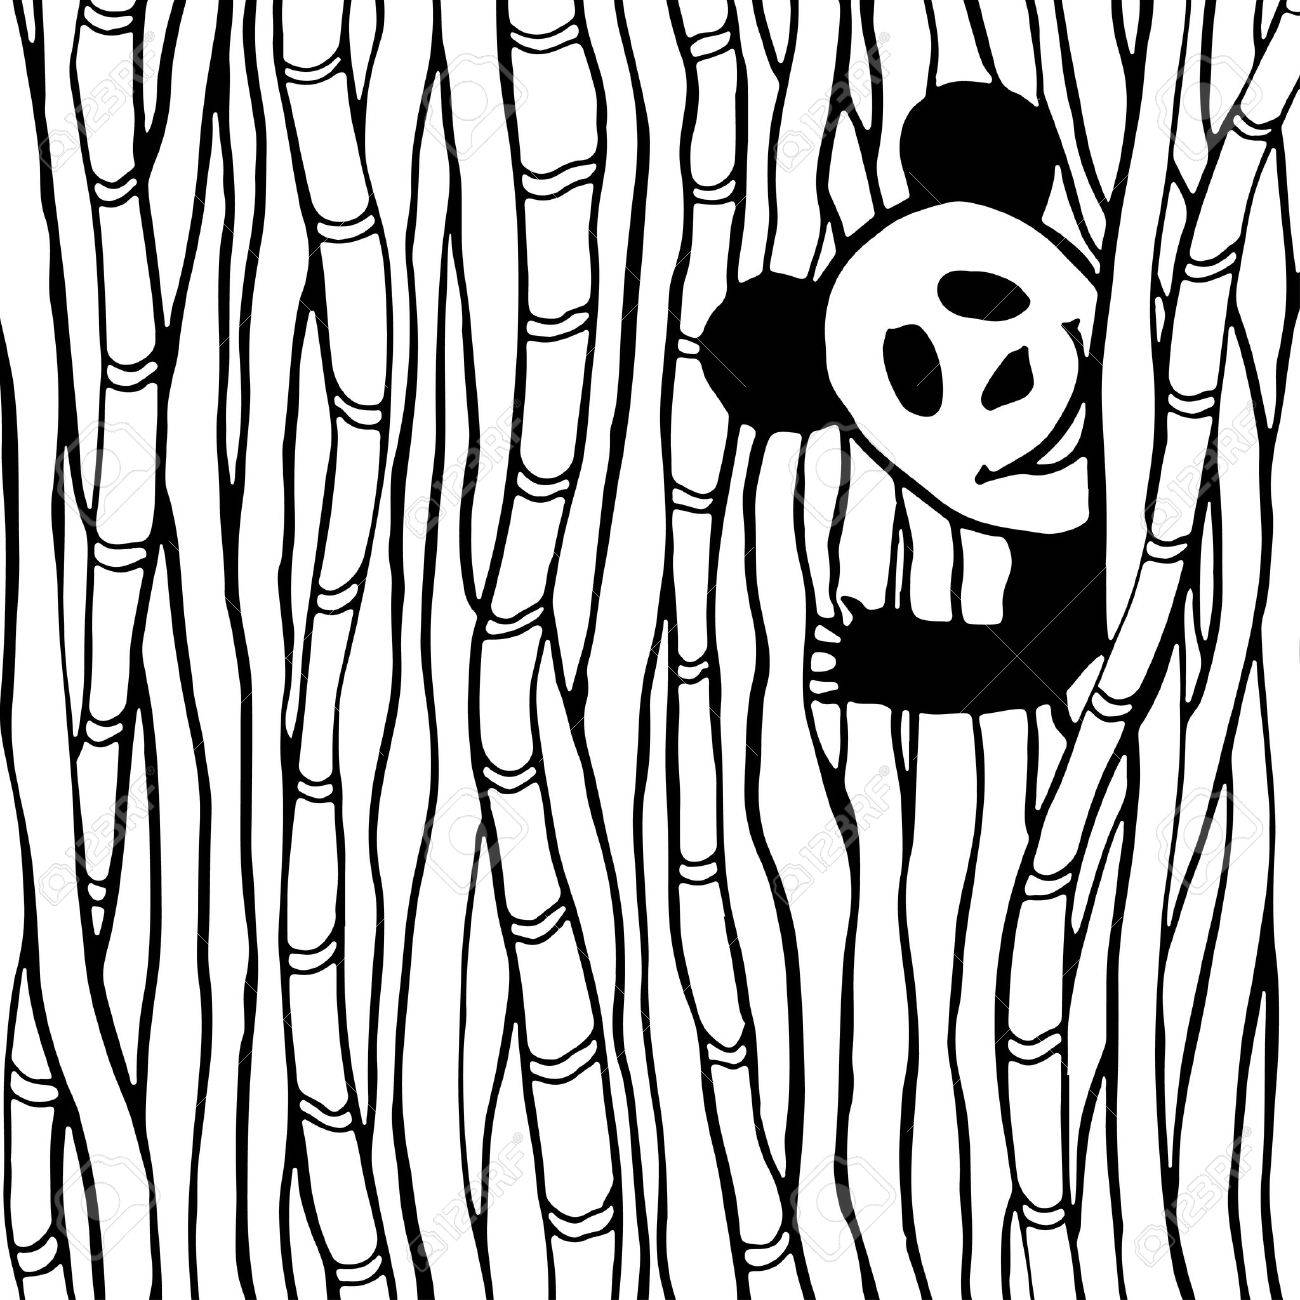 funny panda in the bamboo forest coloring book page vector